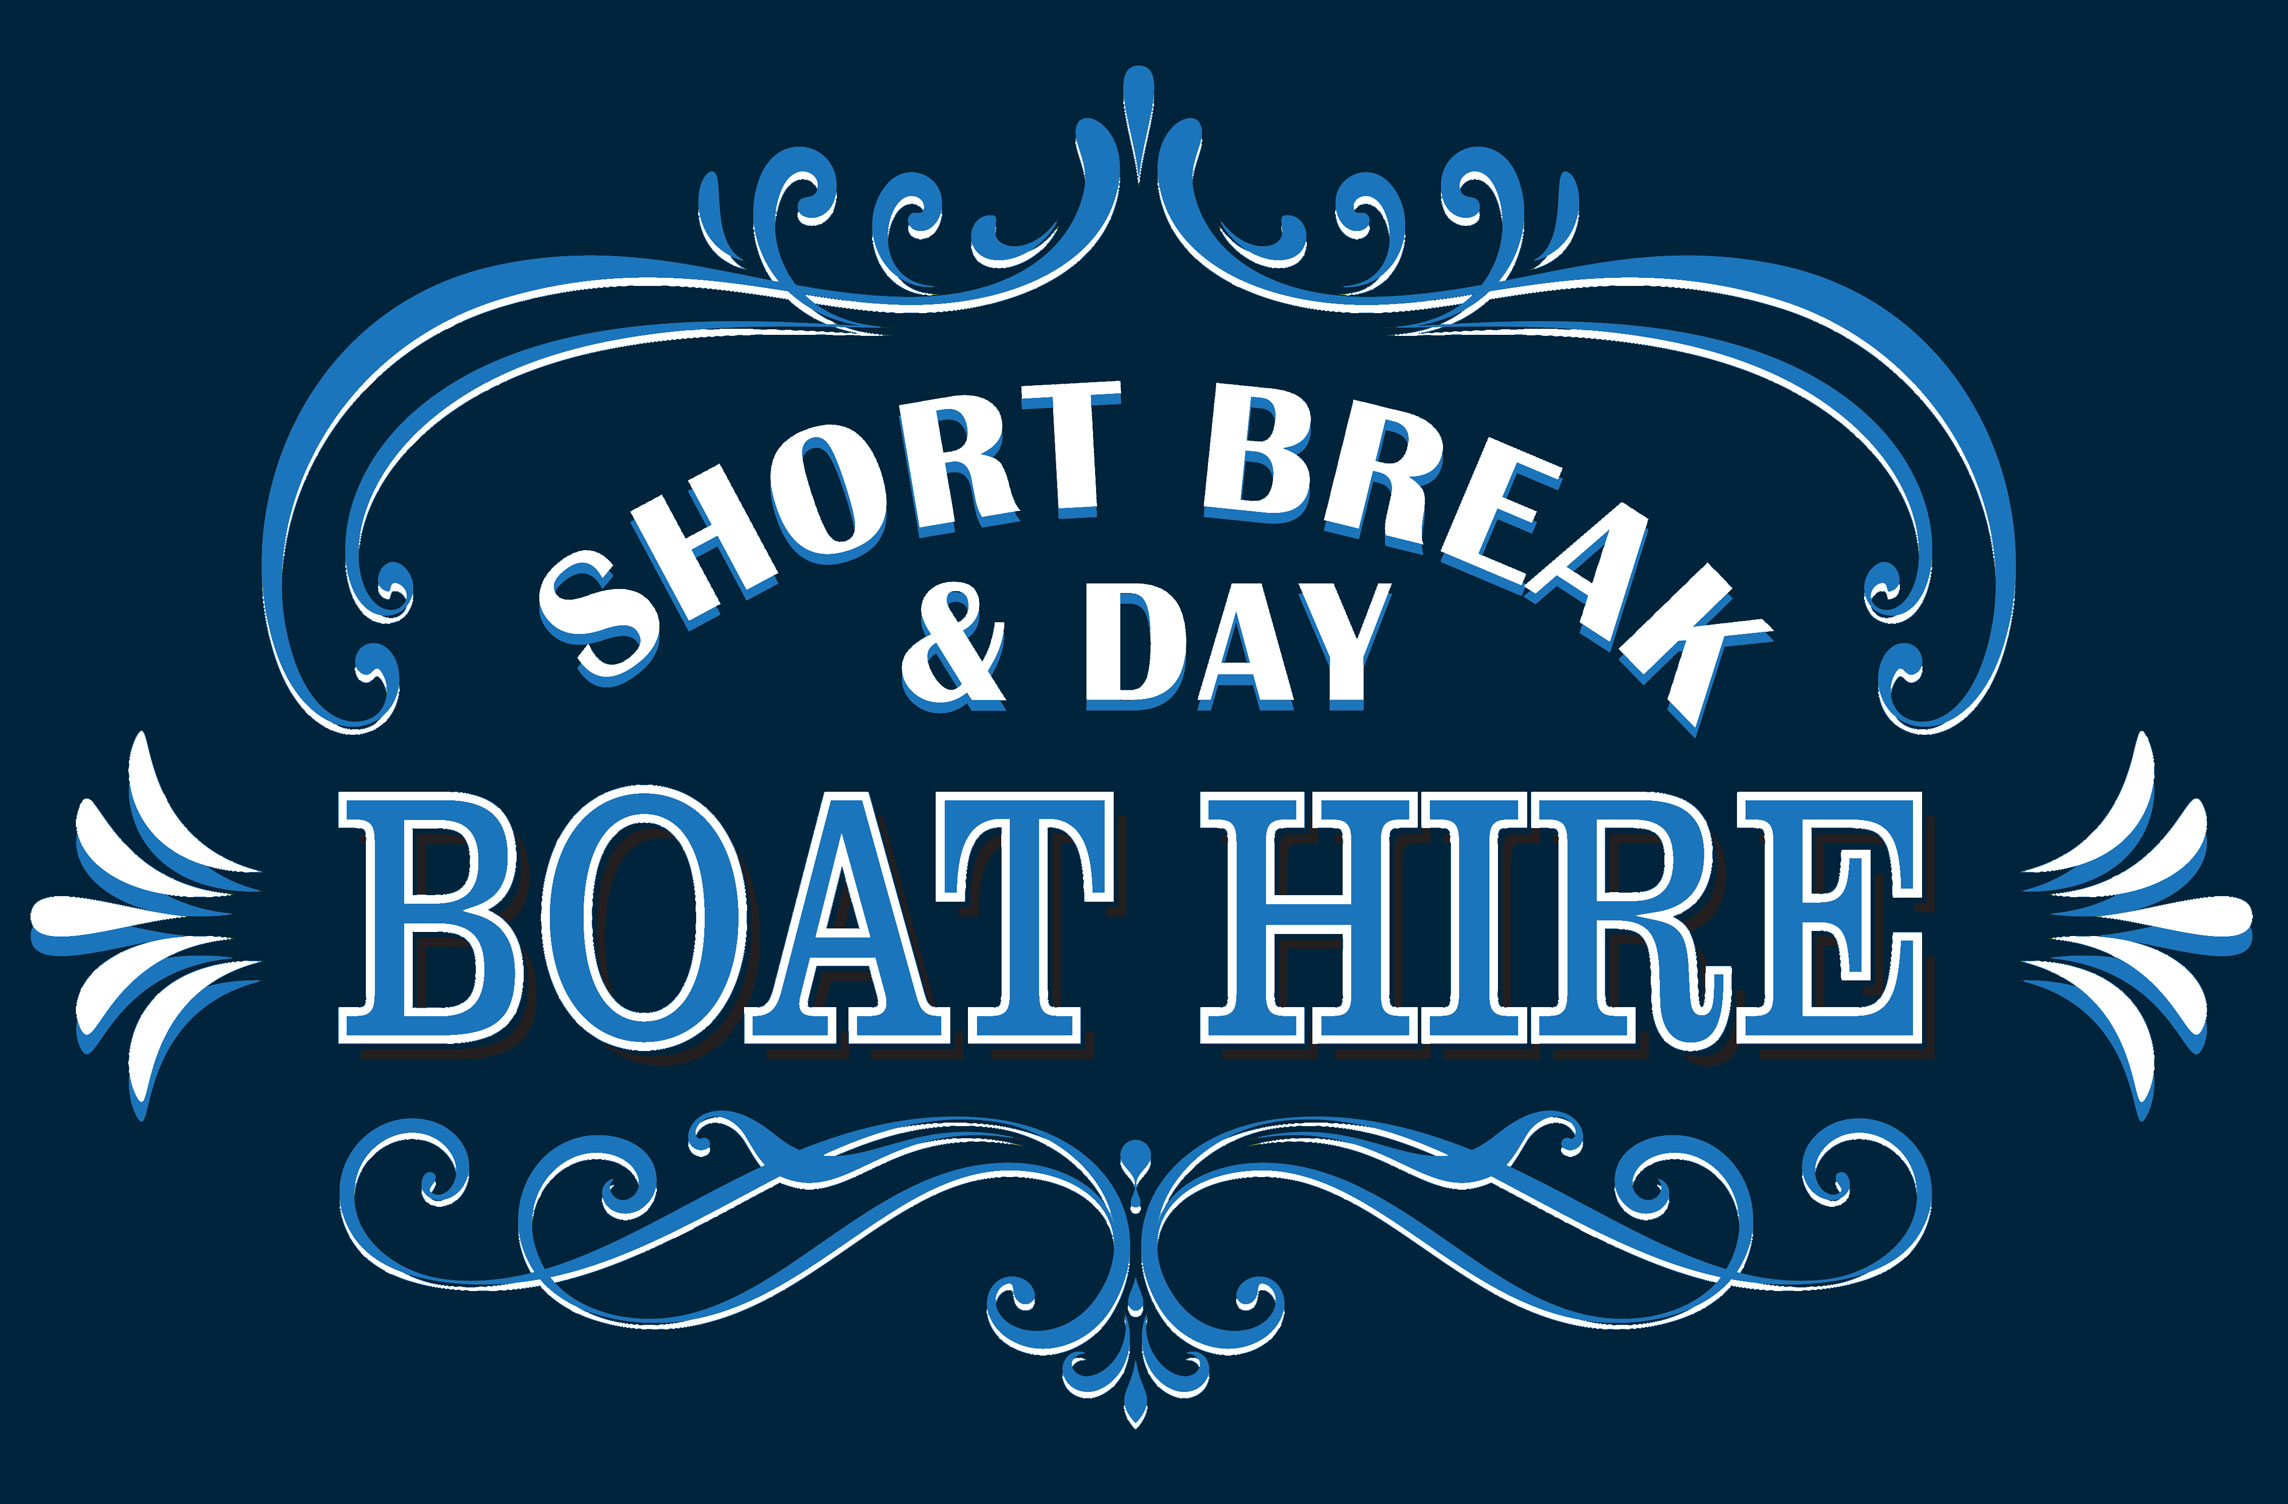 Narrowboat Short Break Hire - Derbyshire